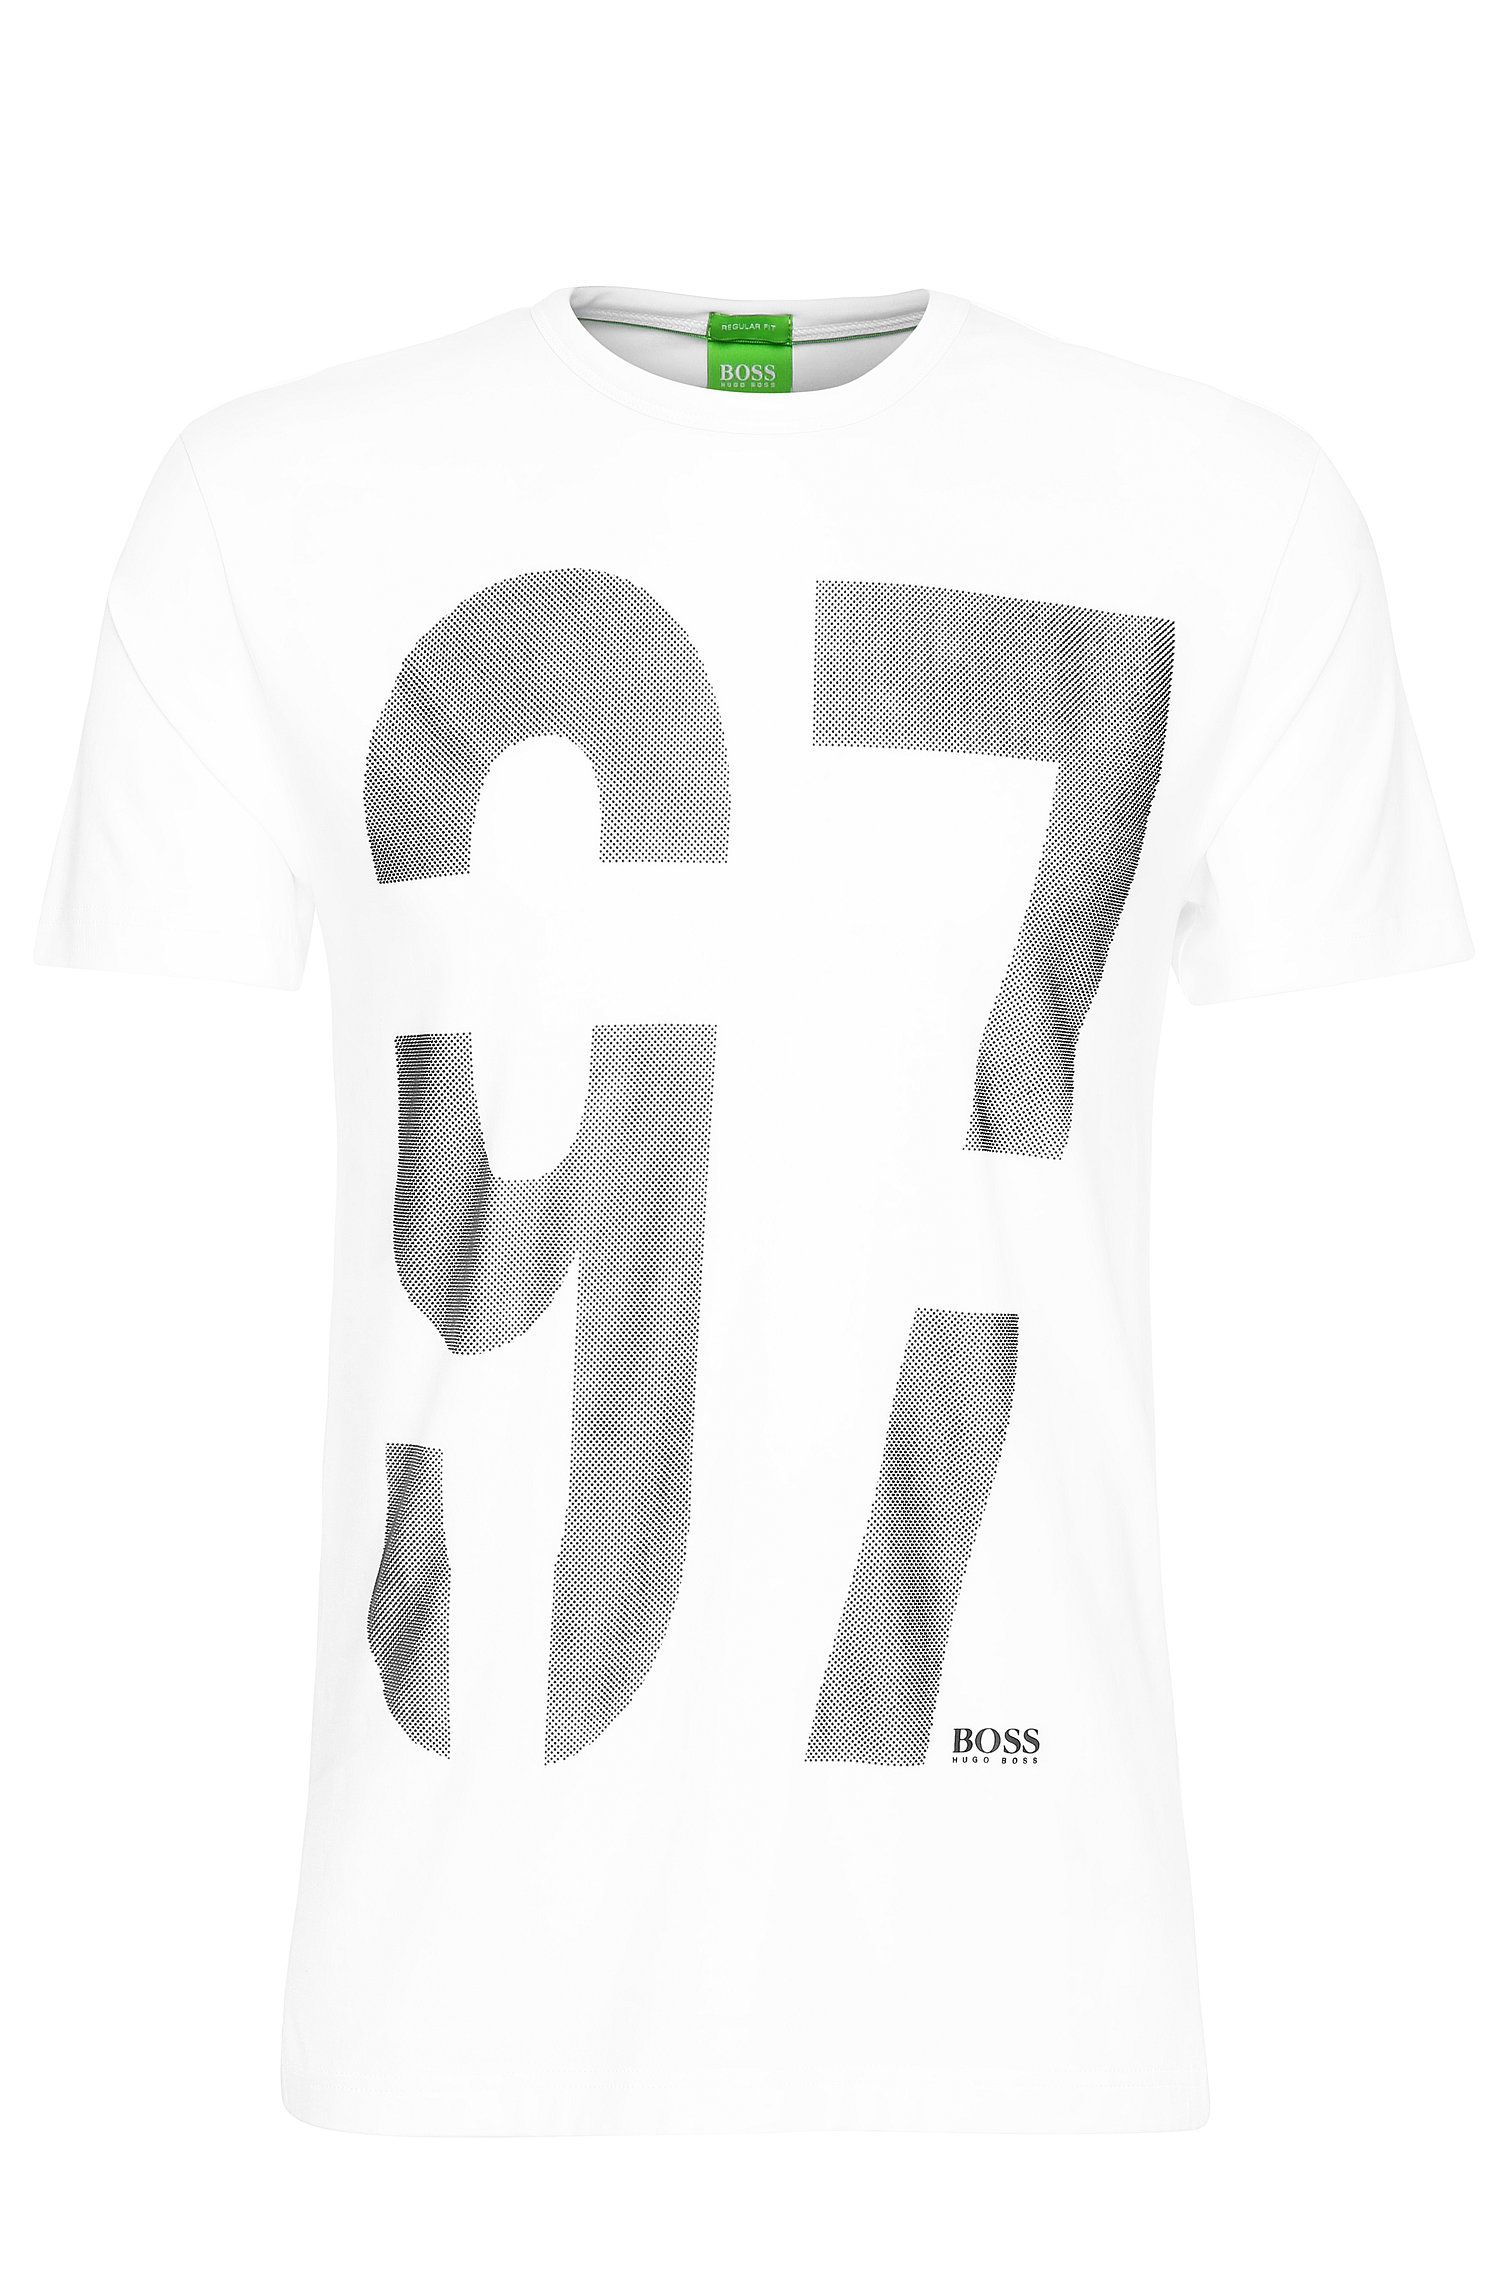 Camiseta estampada regular fit en algodón elástico: 'Tee 11'